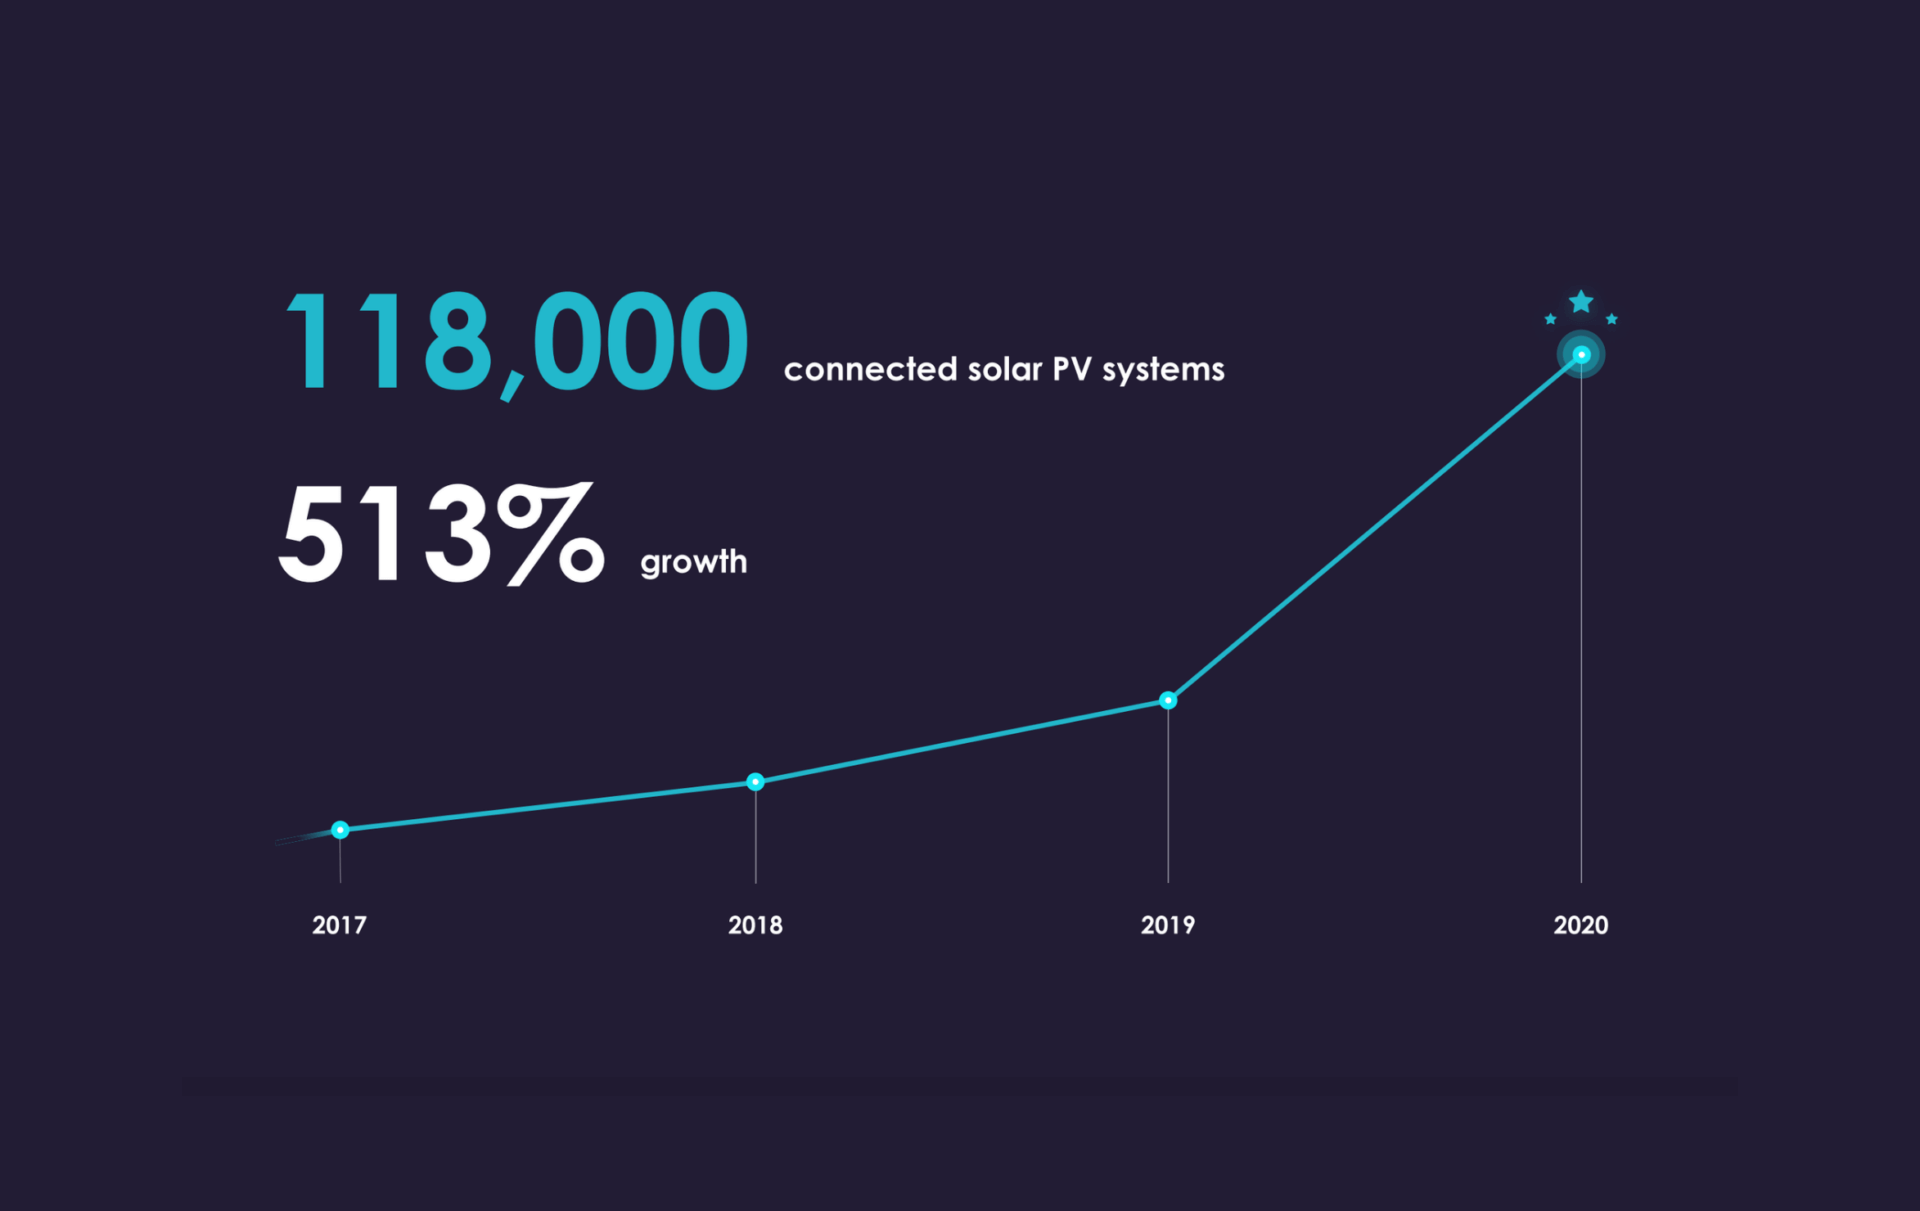 connected solar PV systems growth